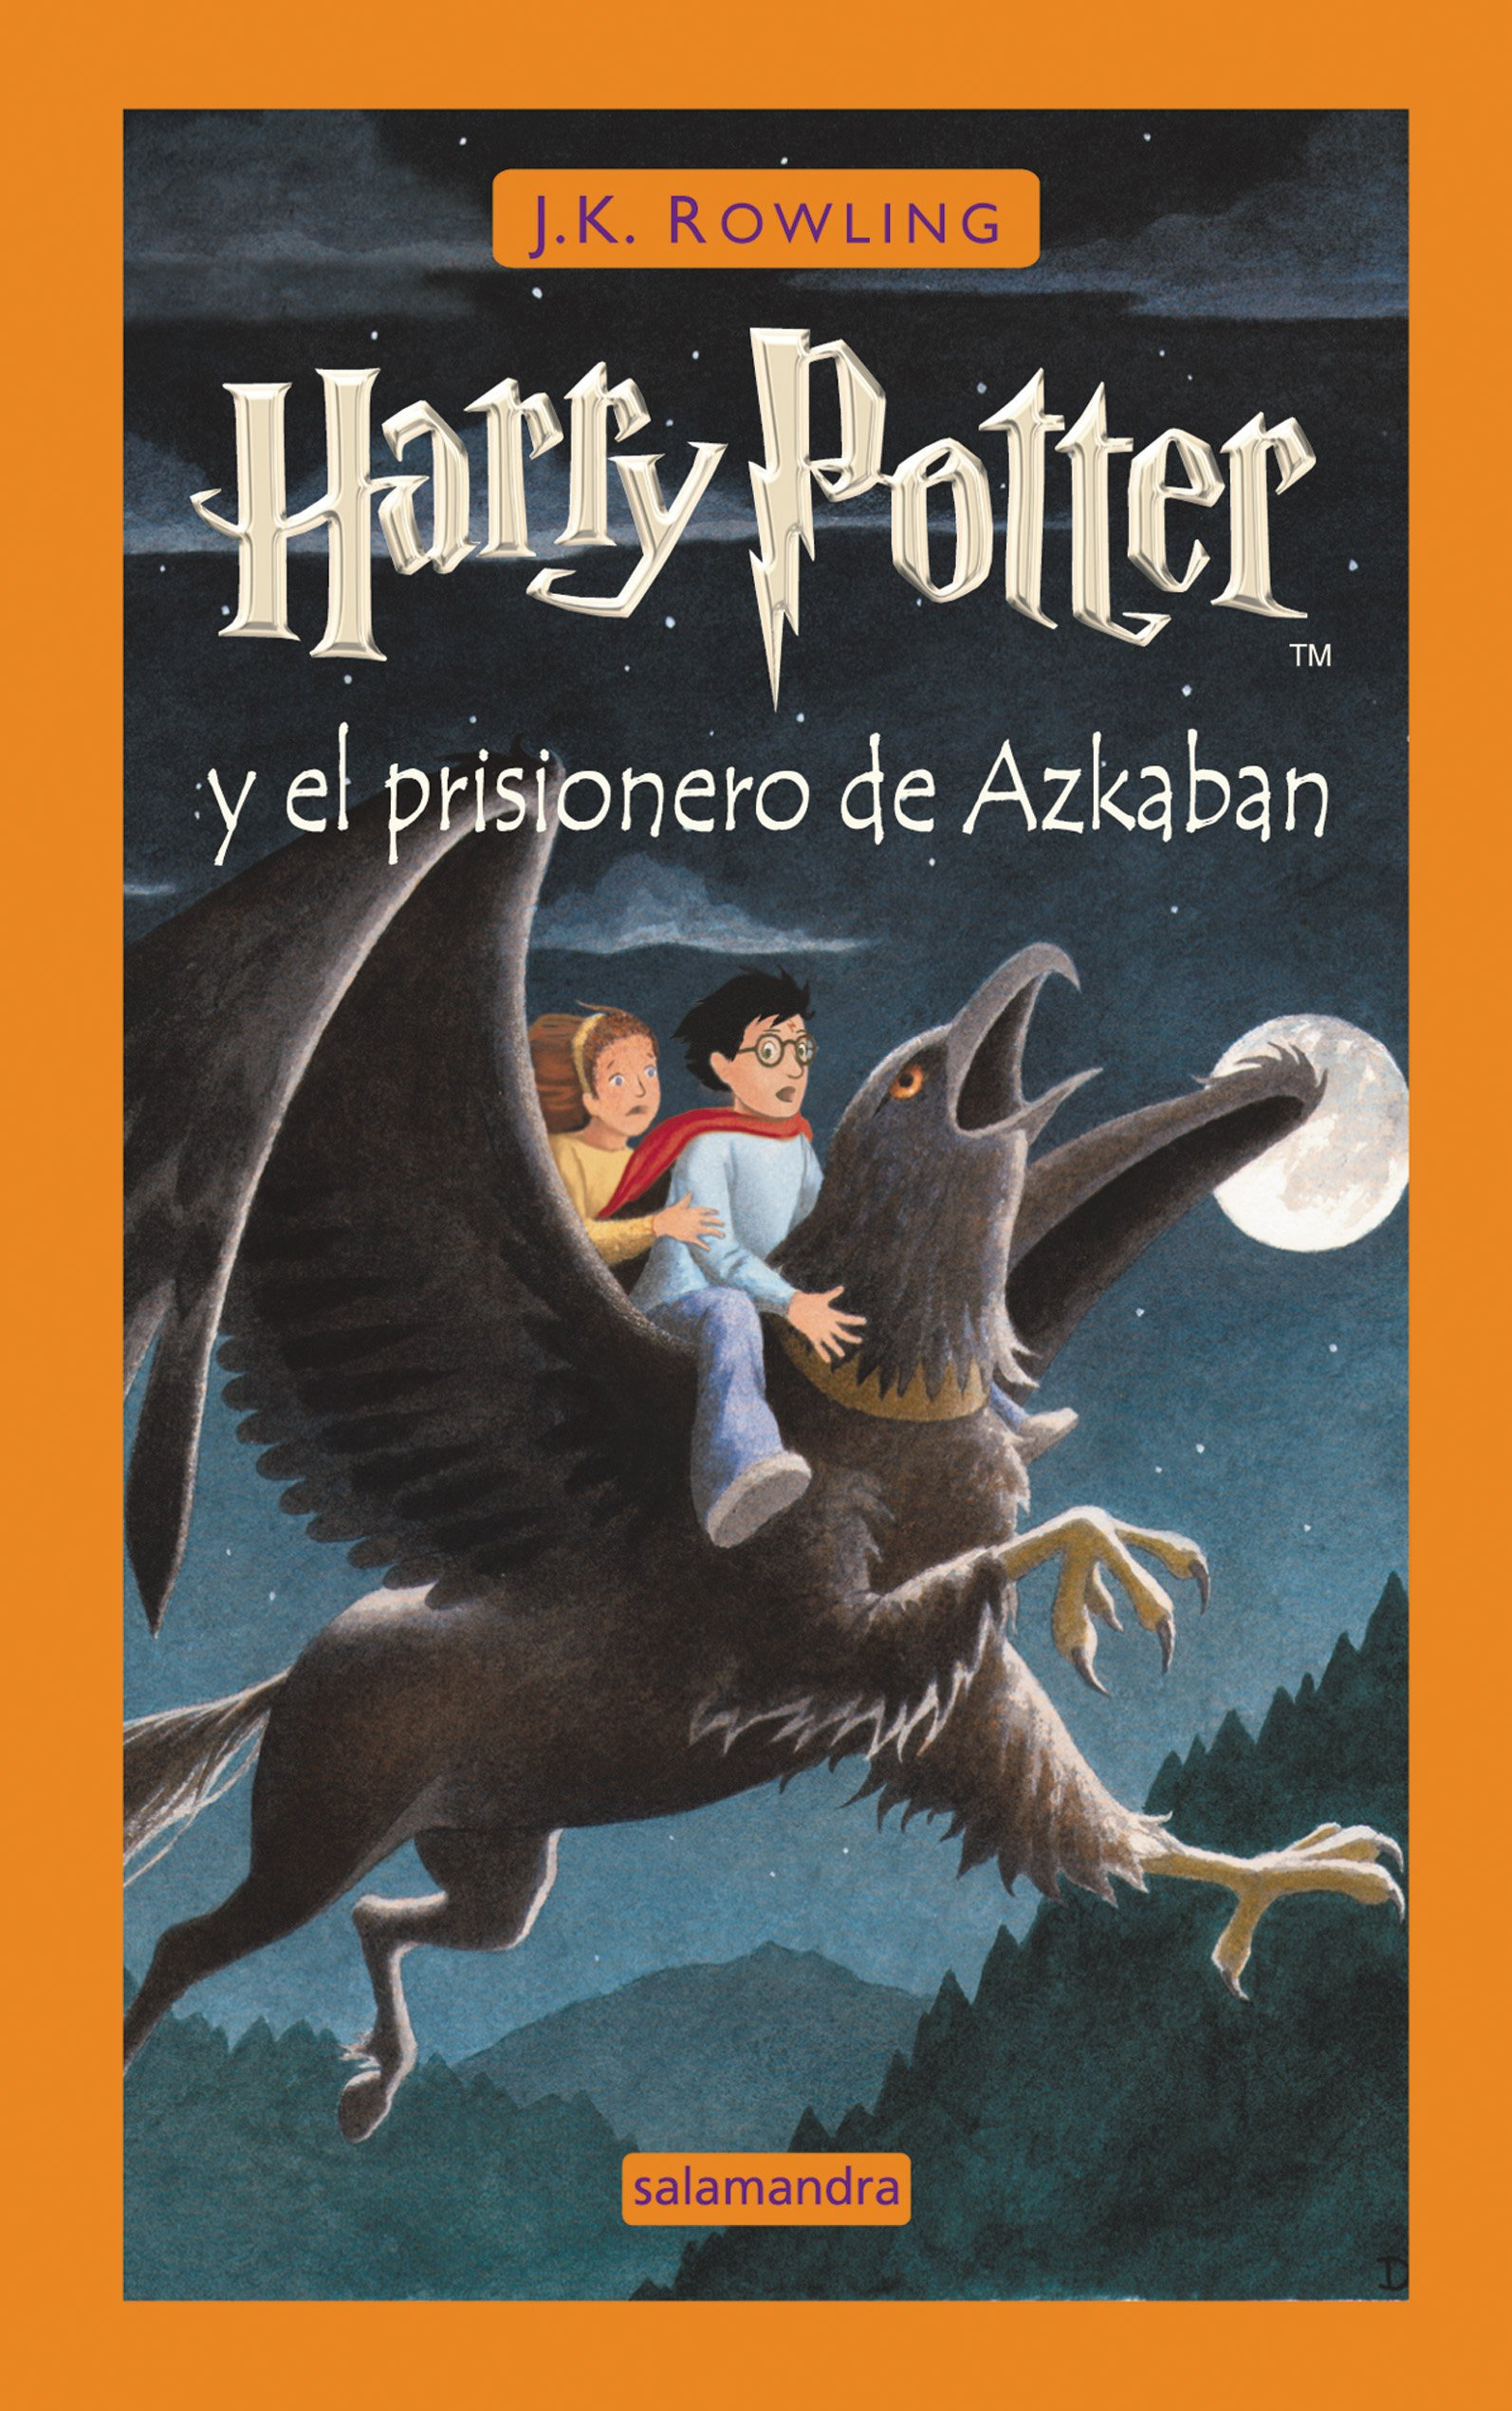 Harry Potter y el prisionero de Azkaban (Harry Potter, #3)